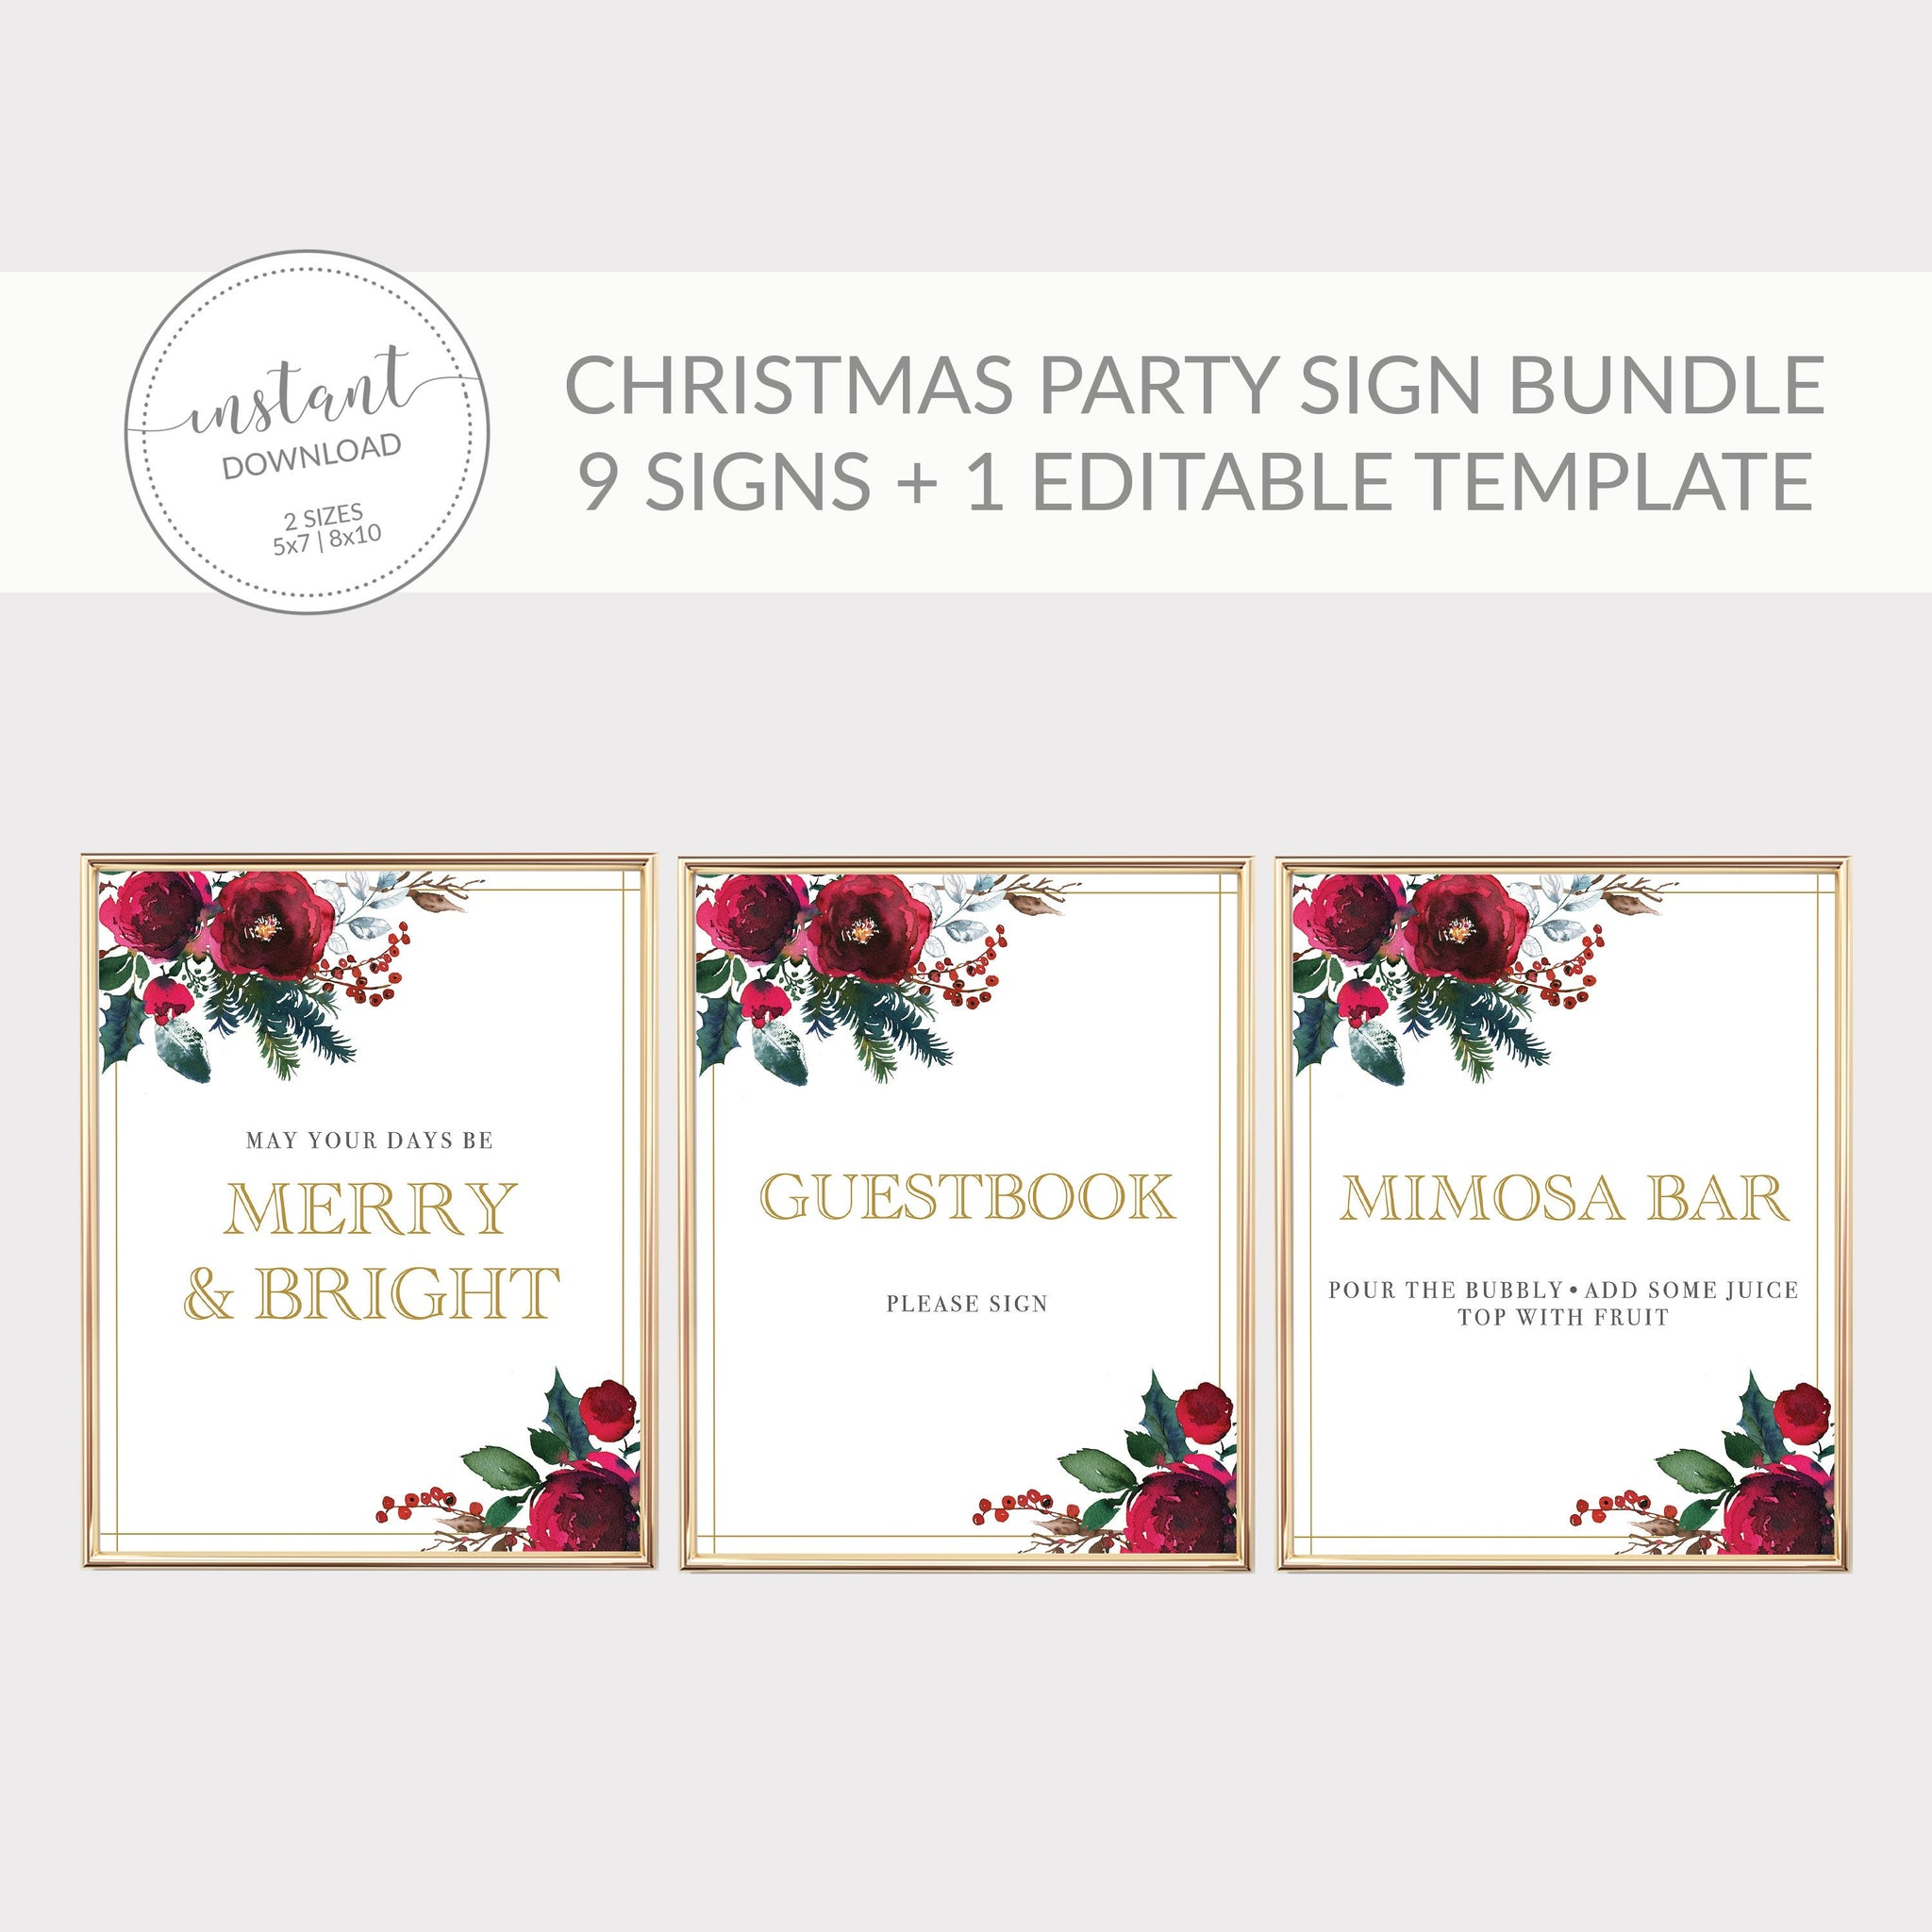 Christmas Party Sign Bundle, Christmas Party Decorations, Holiday Party Decor, Christmas Birthday Party Decorations, DIGITAL DOWNLOAD CG100